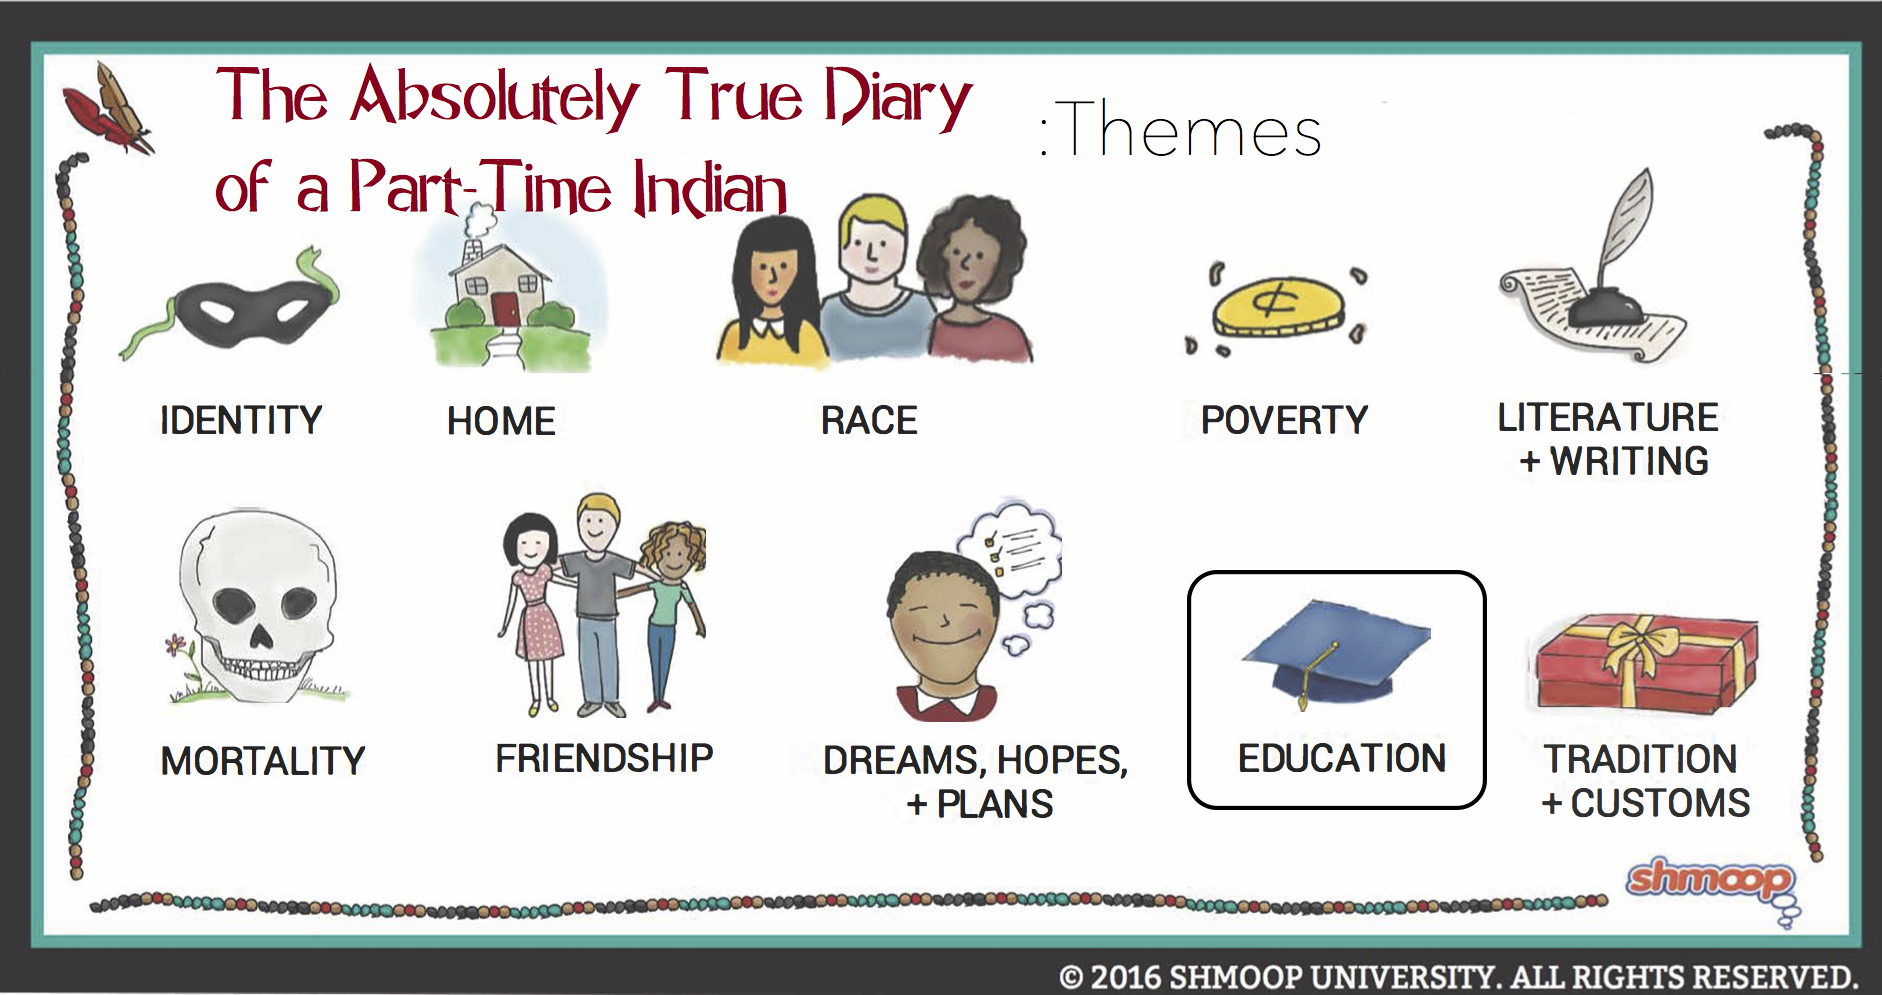 the absolutely true diary of a part-time indian analysis essay The absolutely true diary of a part-time indian study guide contains a biography of sherman alexie, literature essays, quiz questions, major themes, characters, and a.